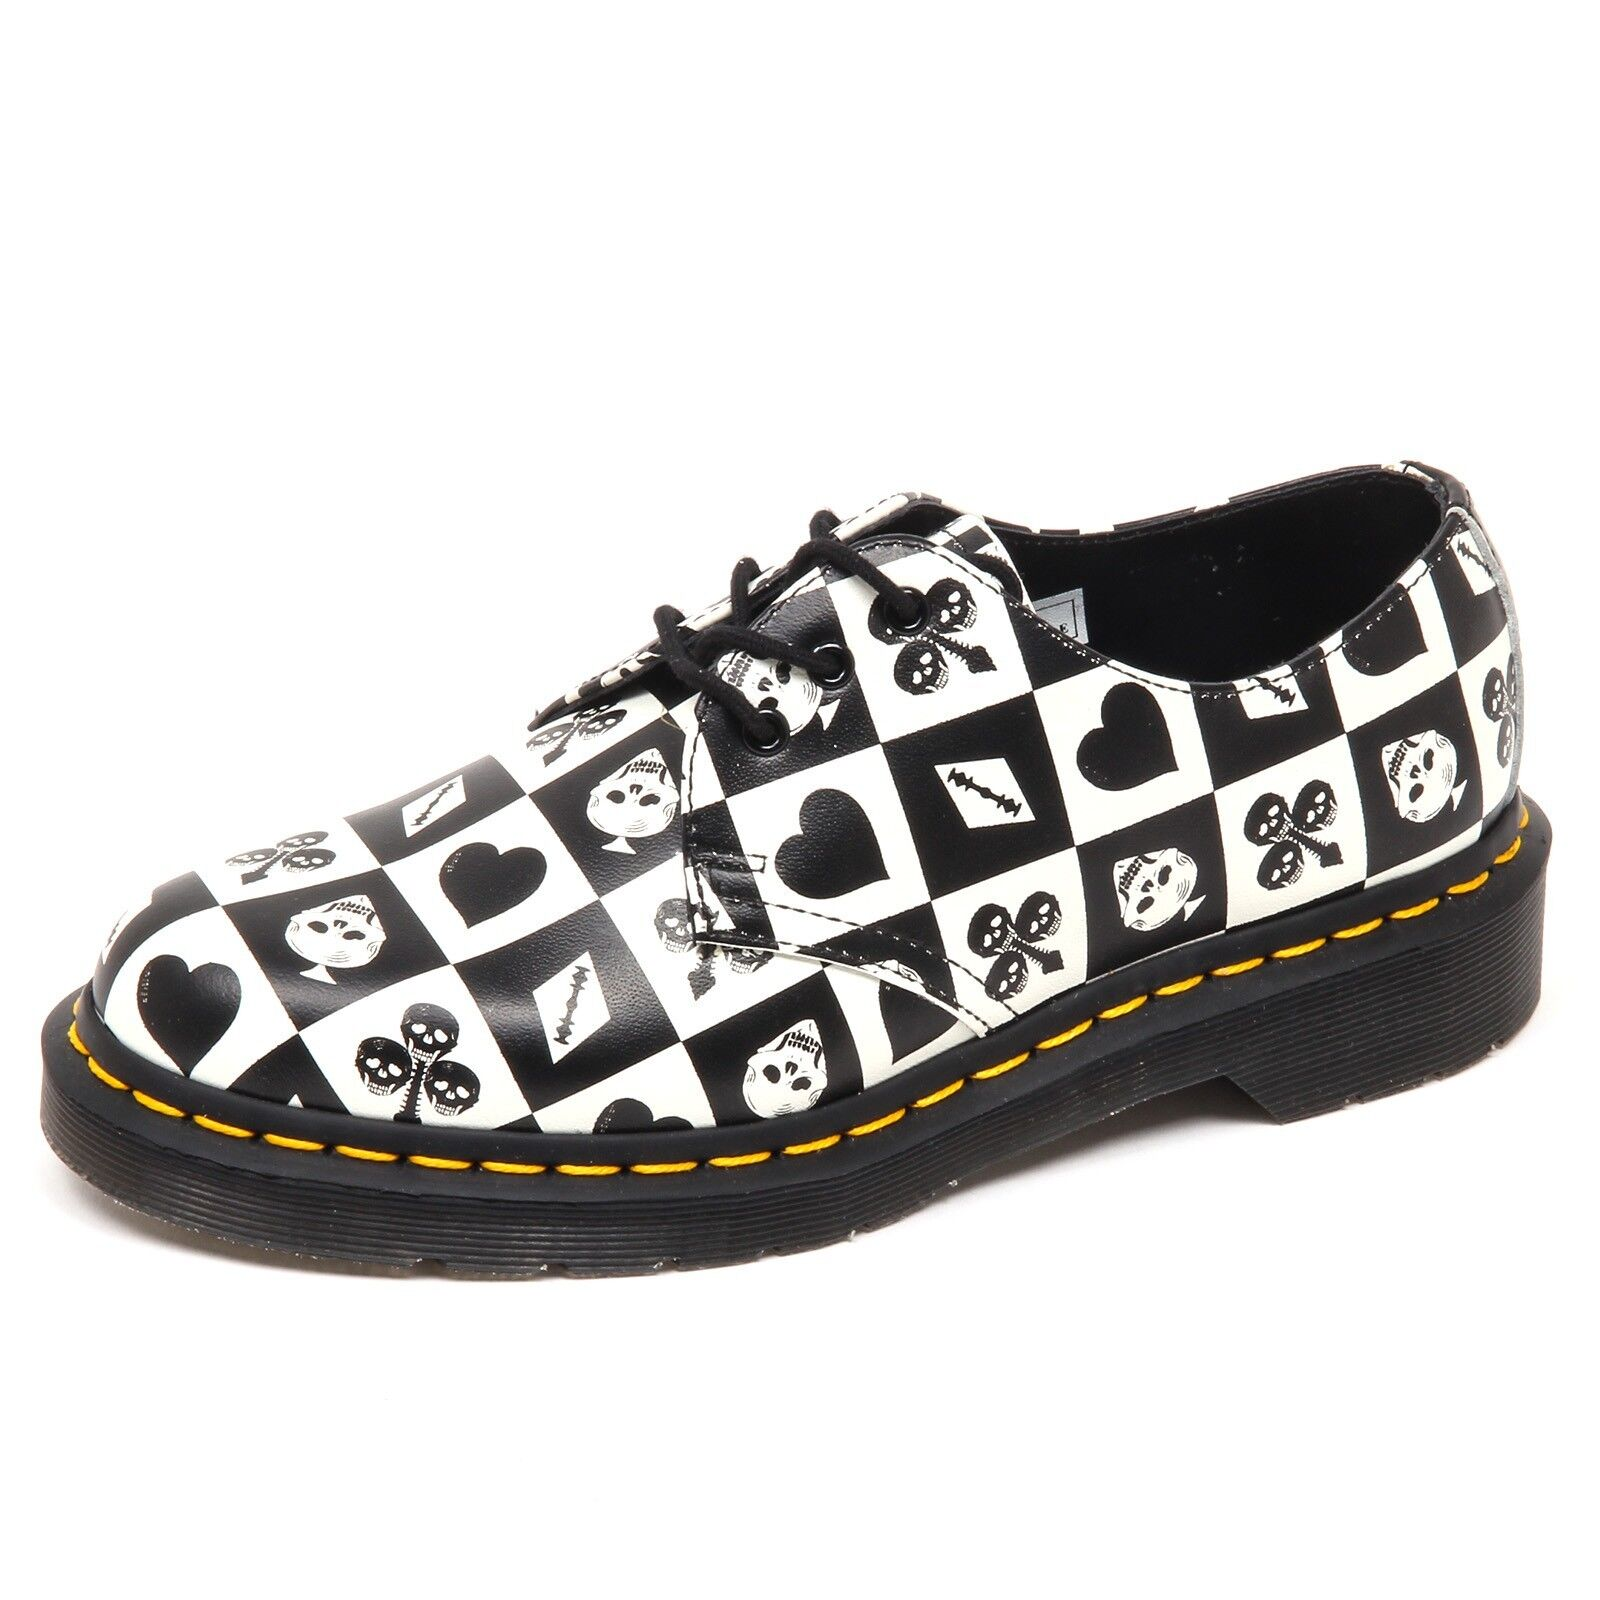 D7098 (SAMPLE NOT scarpa FOR RESALE WITHOUT BOX) scarpa NOT donna DR. MARTENS shoe woman c240f5